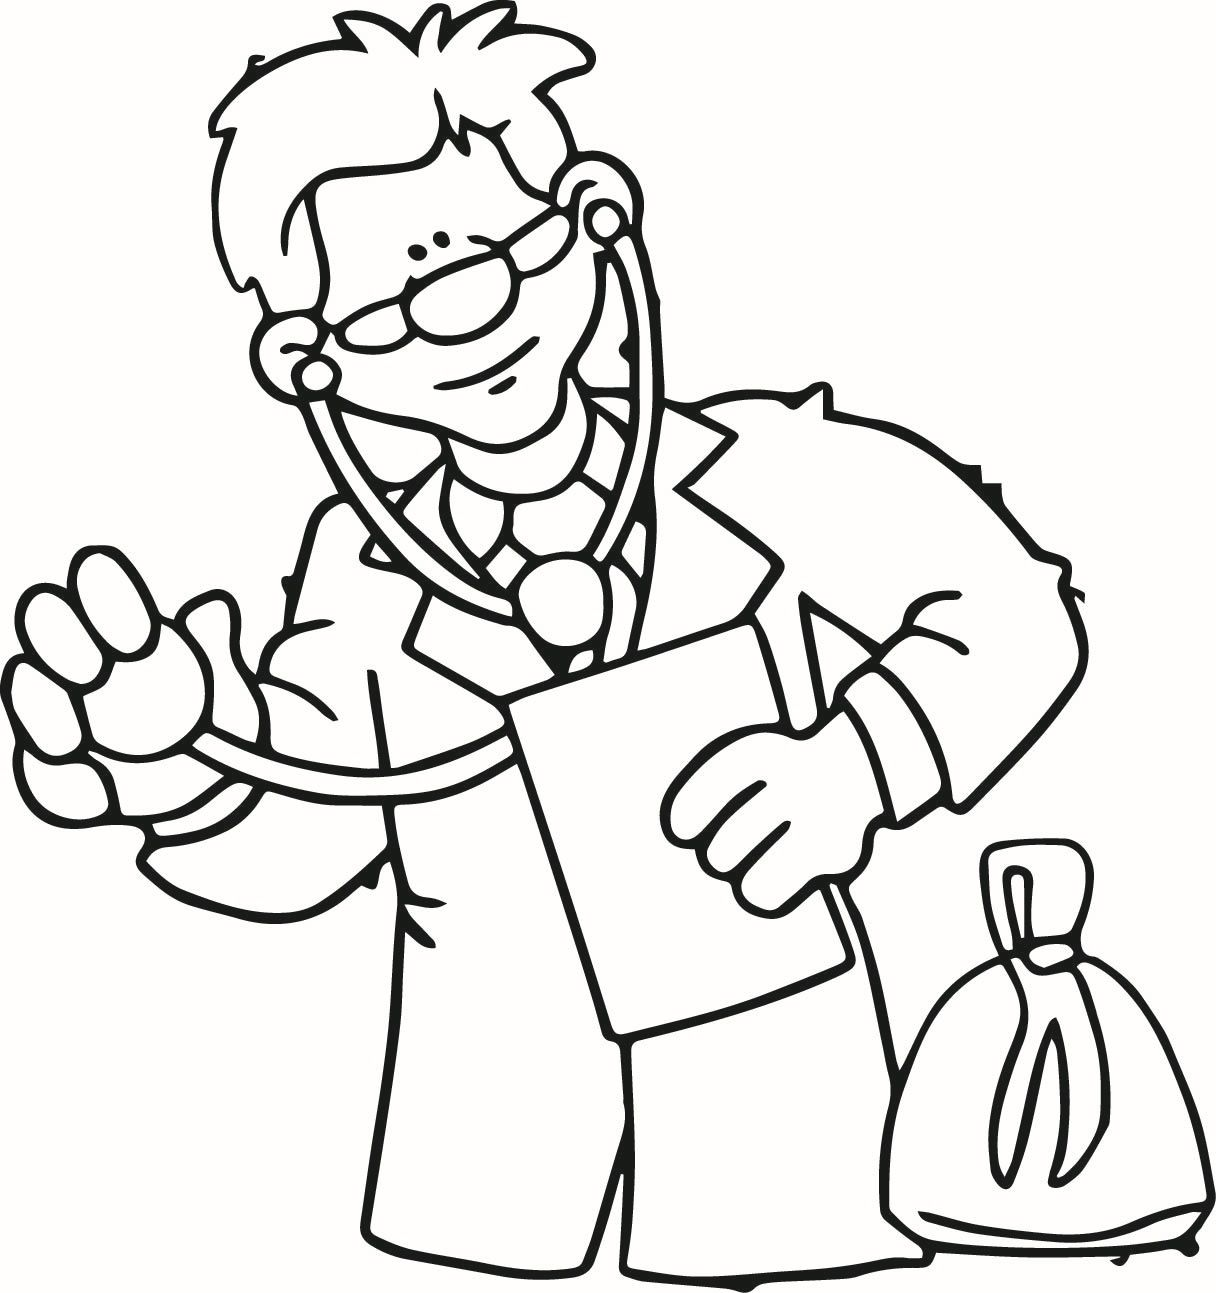 kid doctor coloring pages - photo#4